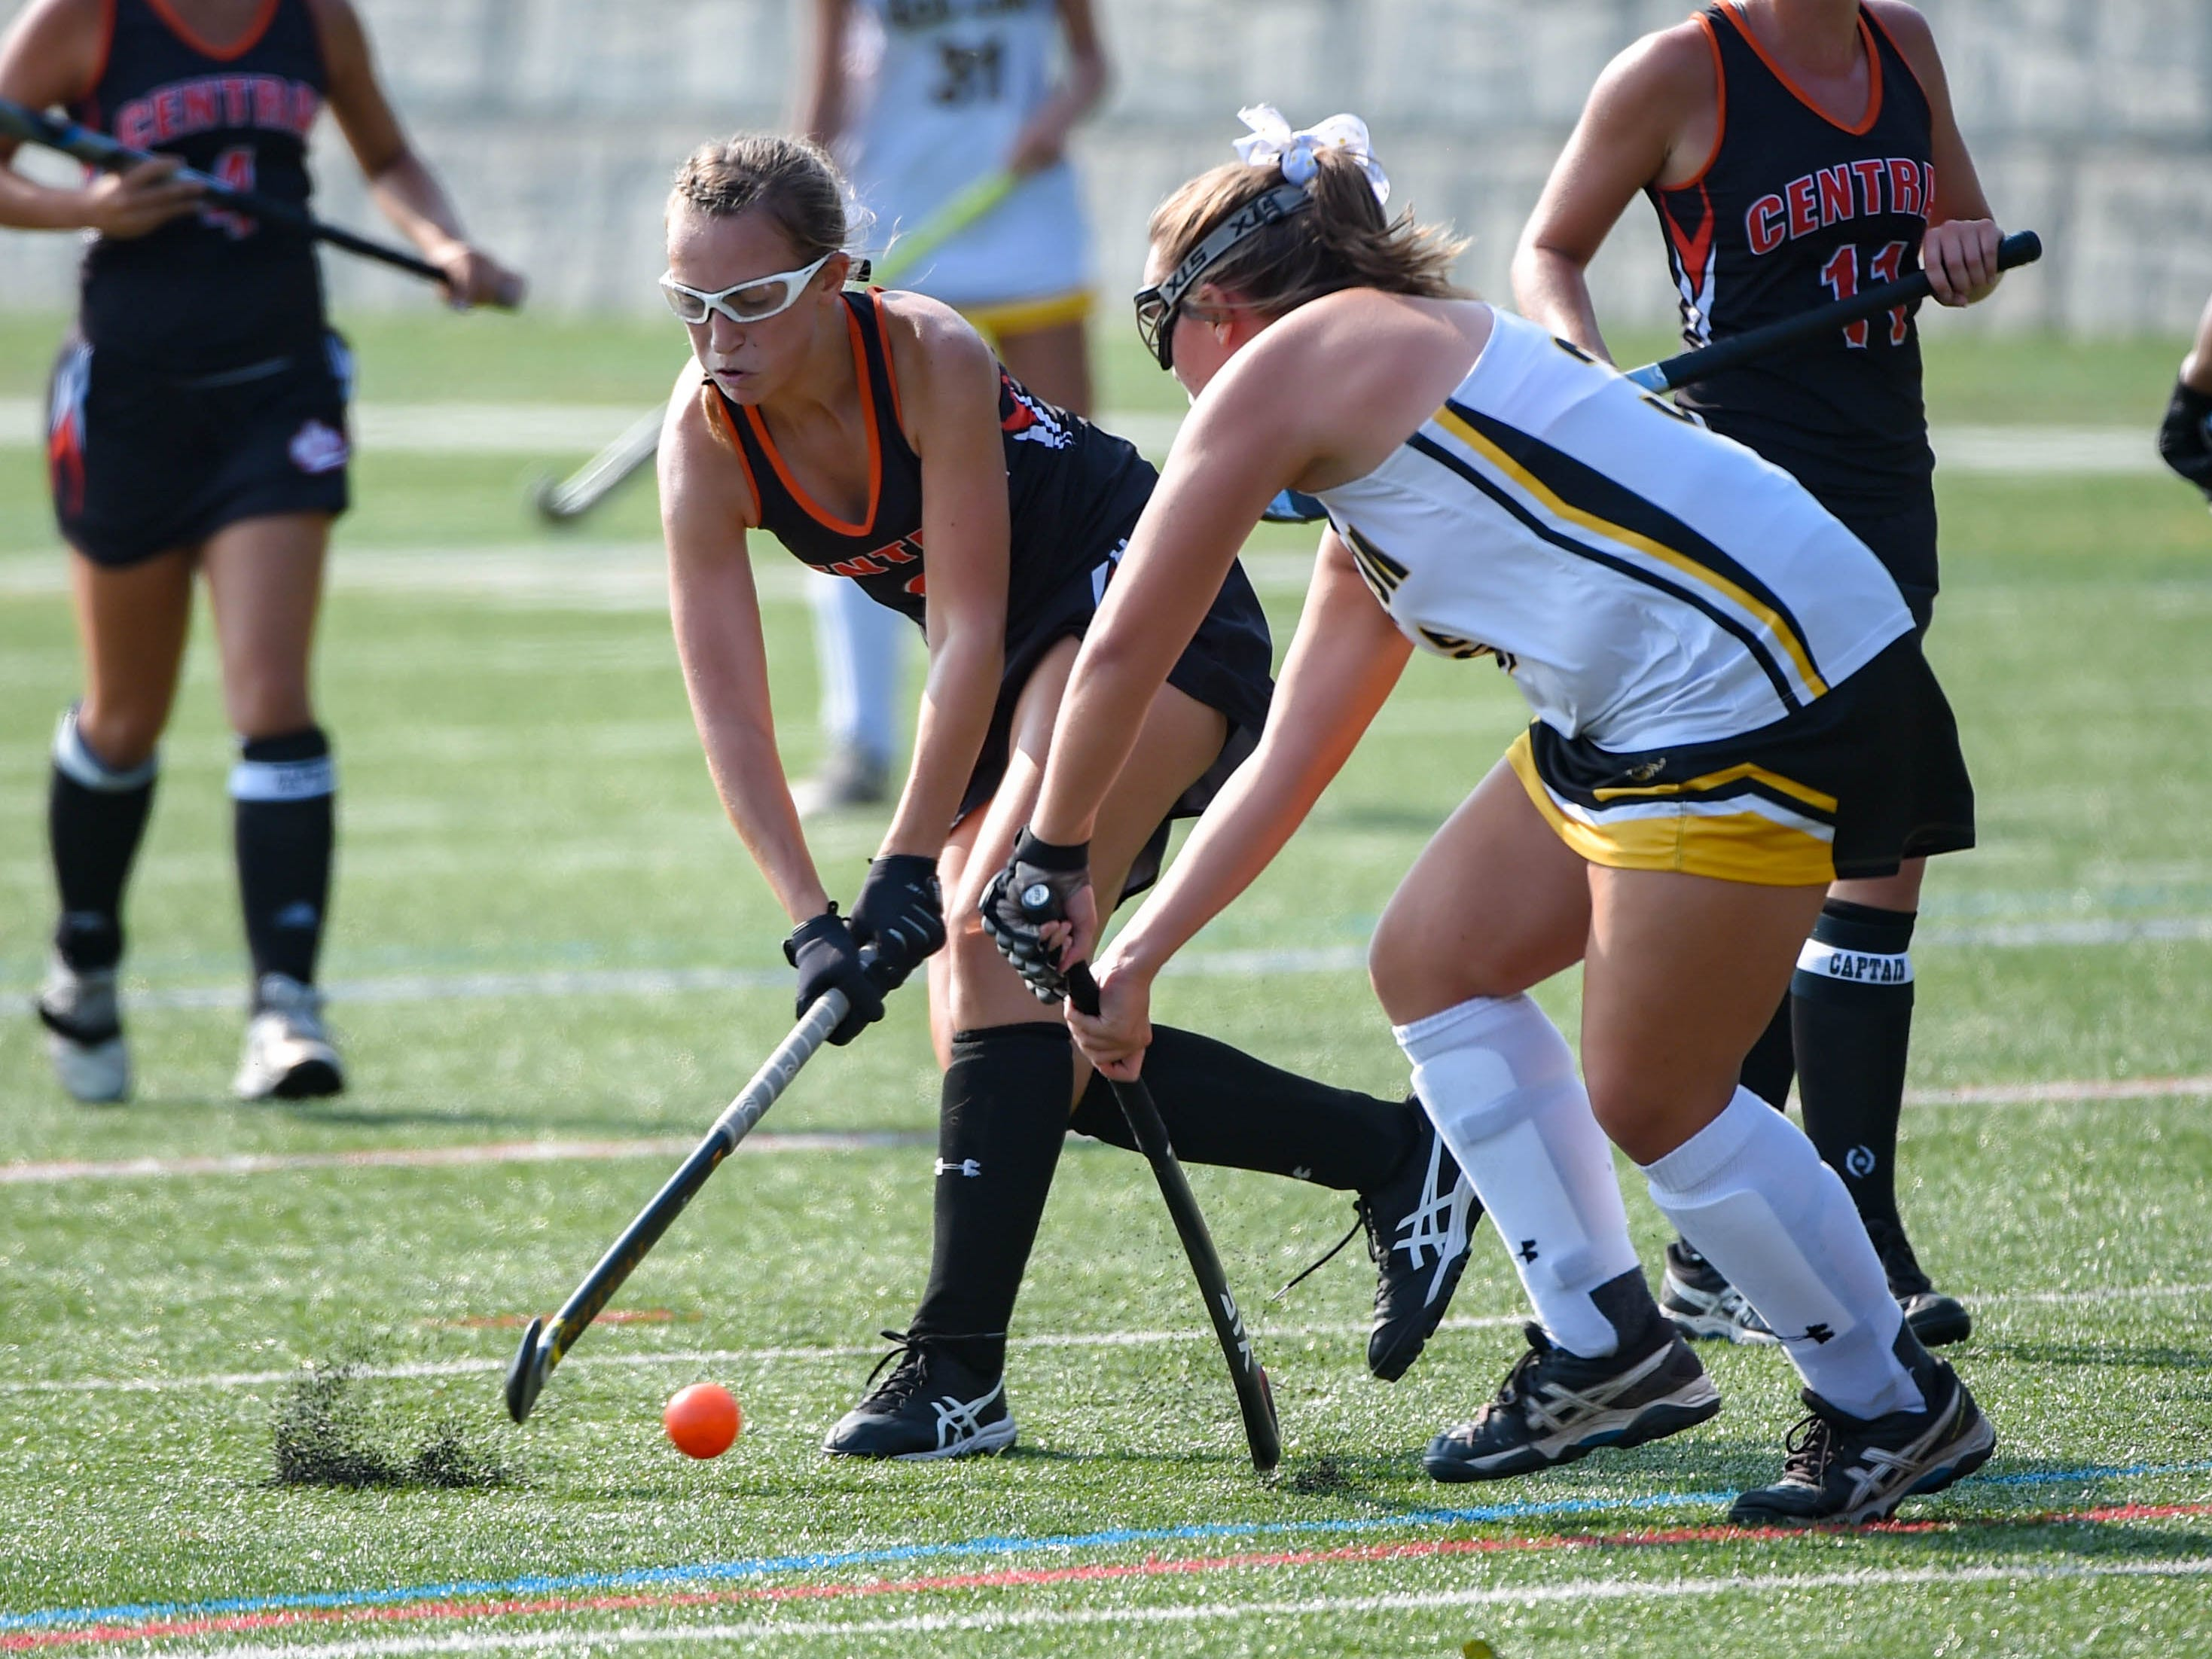 Central York's Grace Harrold (6) takes a shot during their game against Red Lion, Wednesday, September 19, 2018.